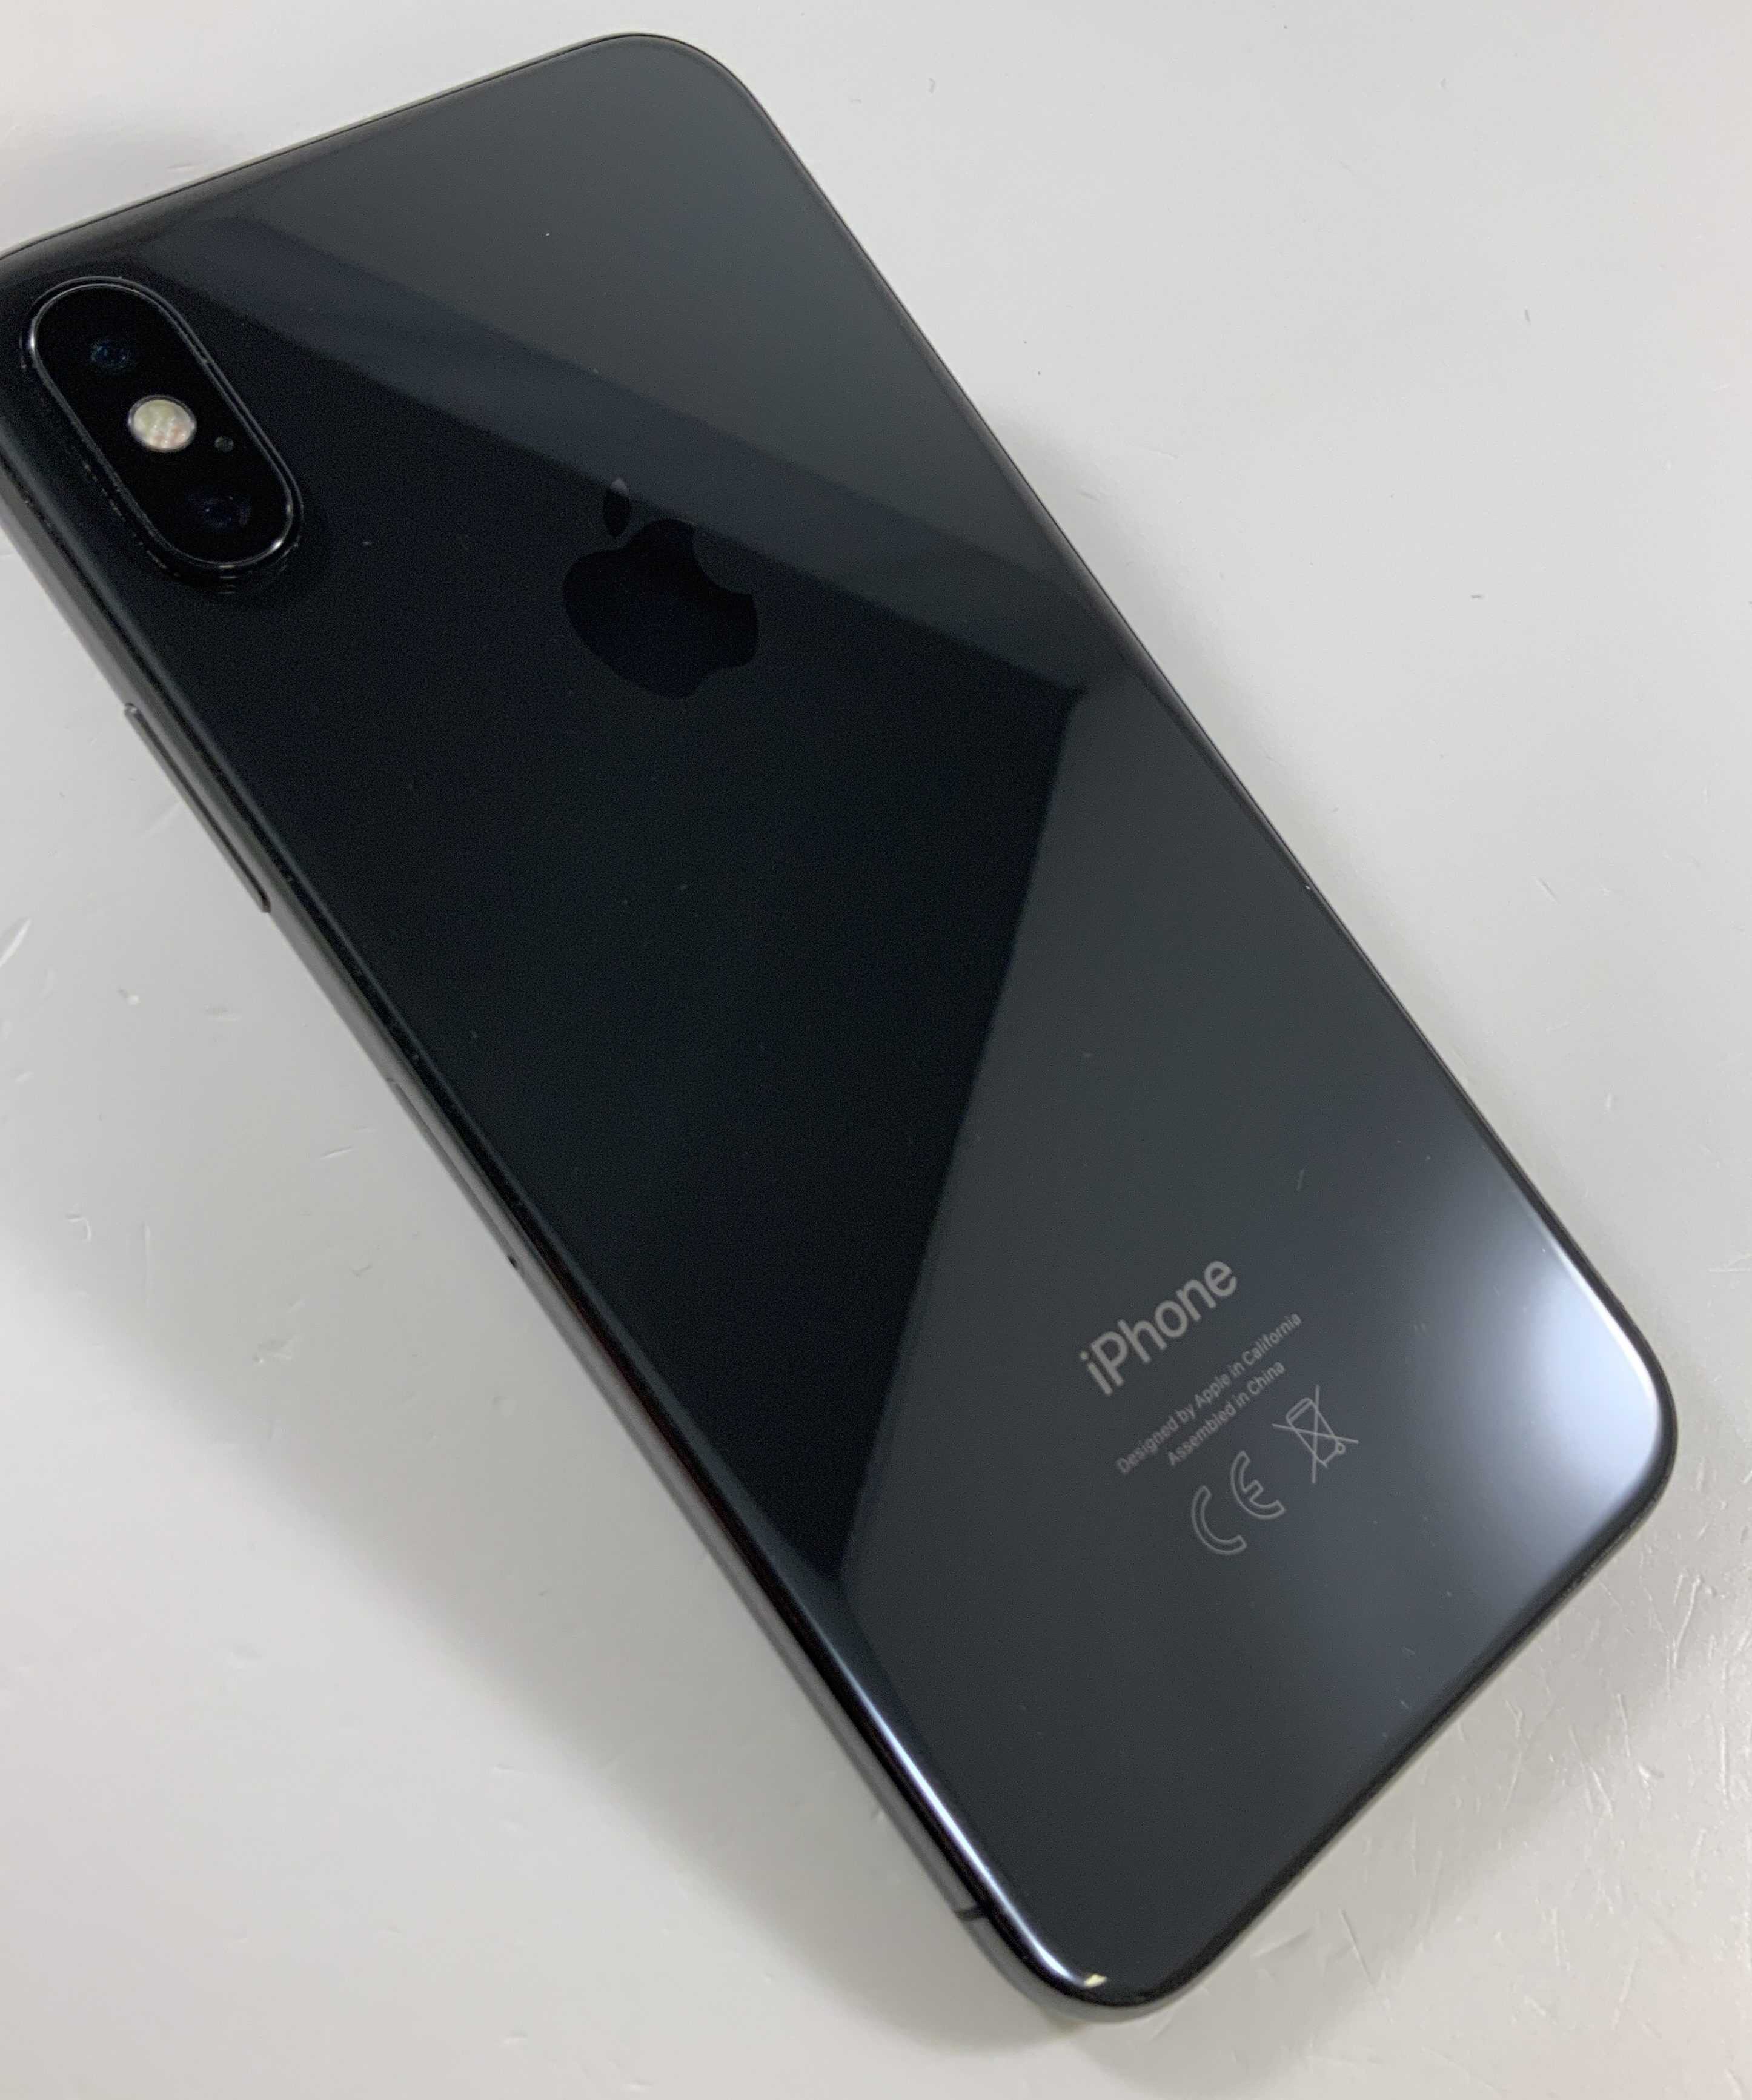 iPhone X 64GB, 64GB, Space Gray, immagine 3